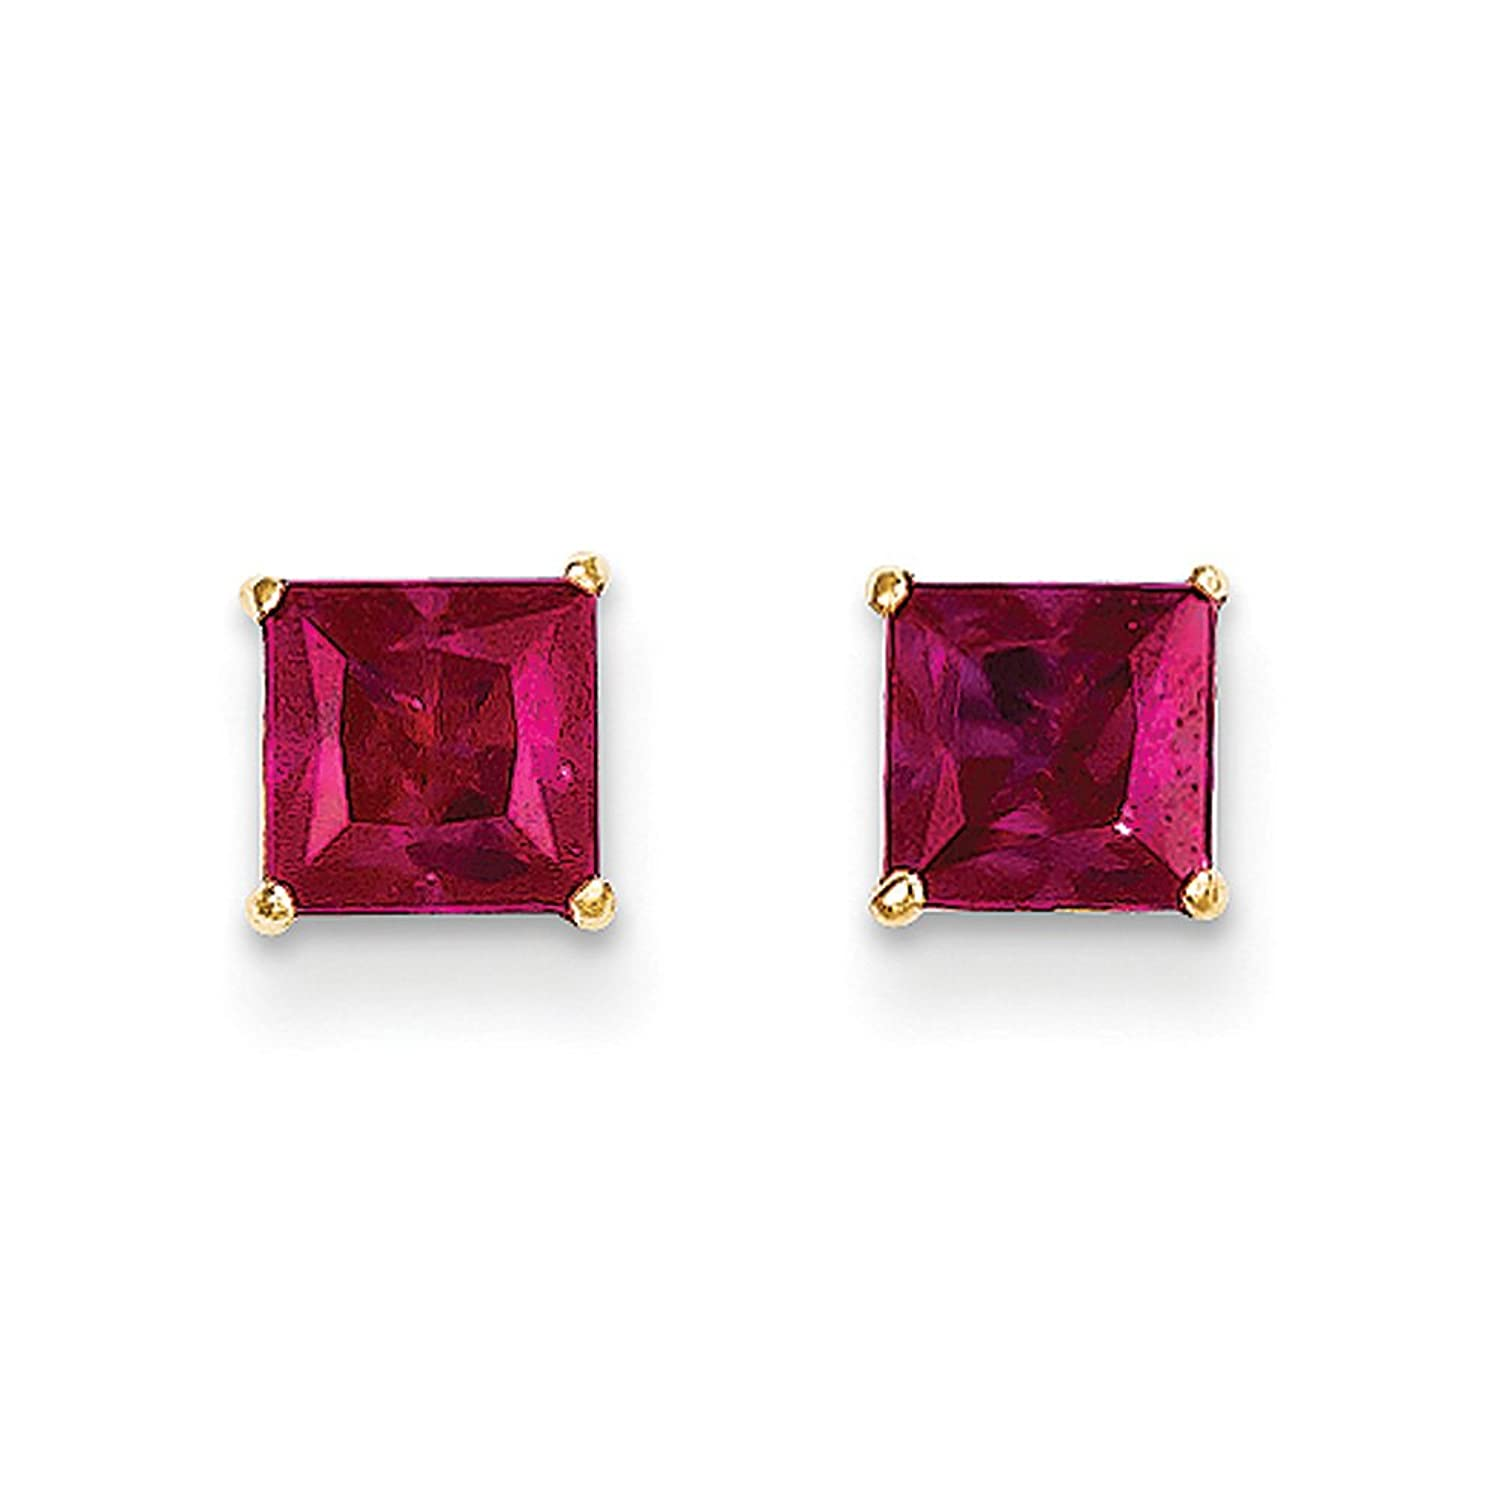 ec earrings lb rb products jewellery jewelry maja dubrul iv and flapper ruby